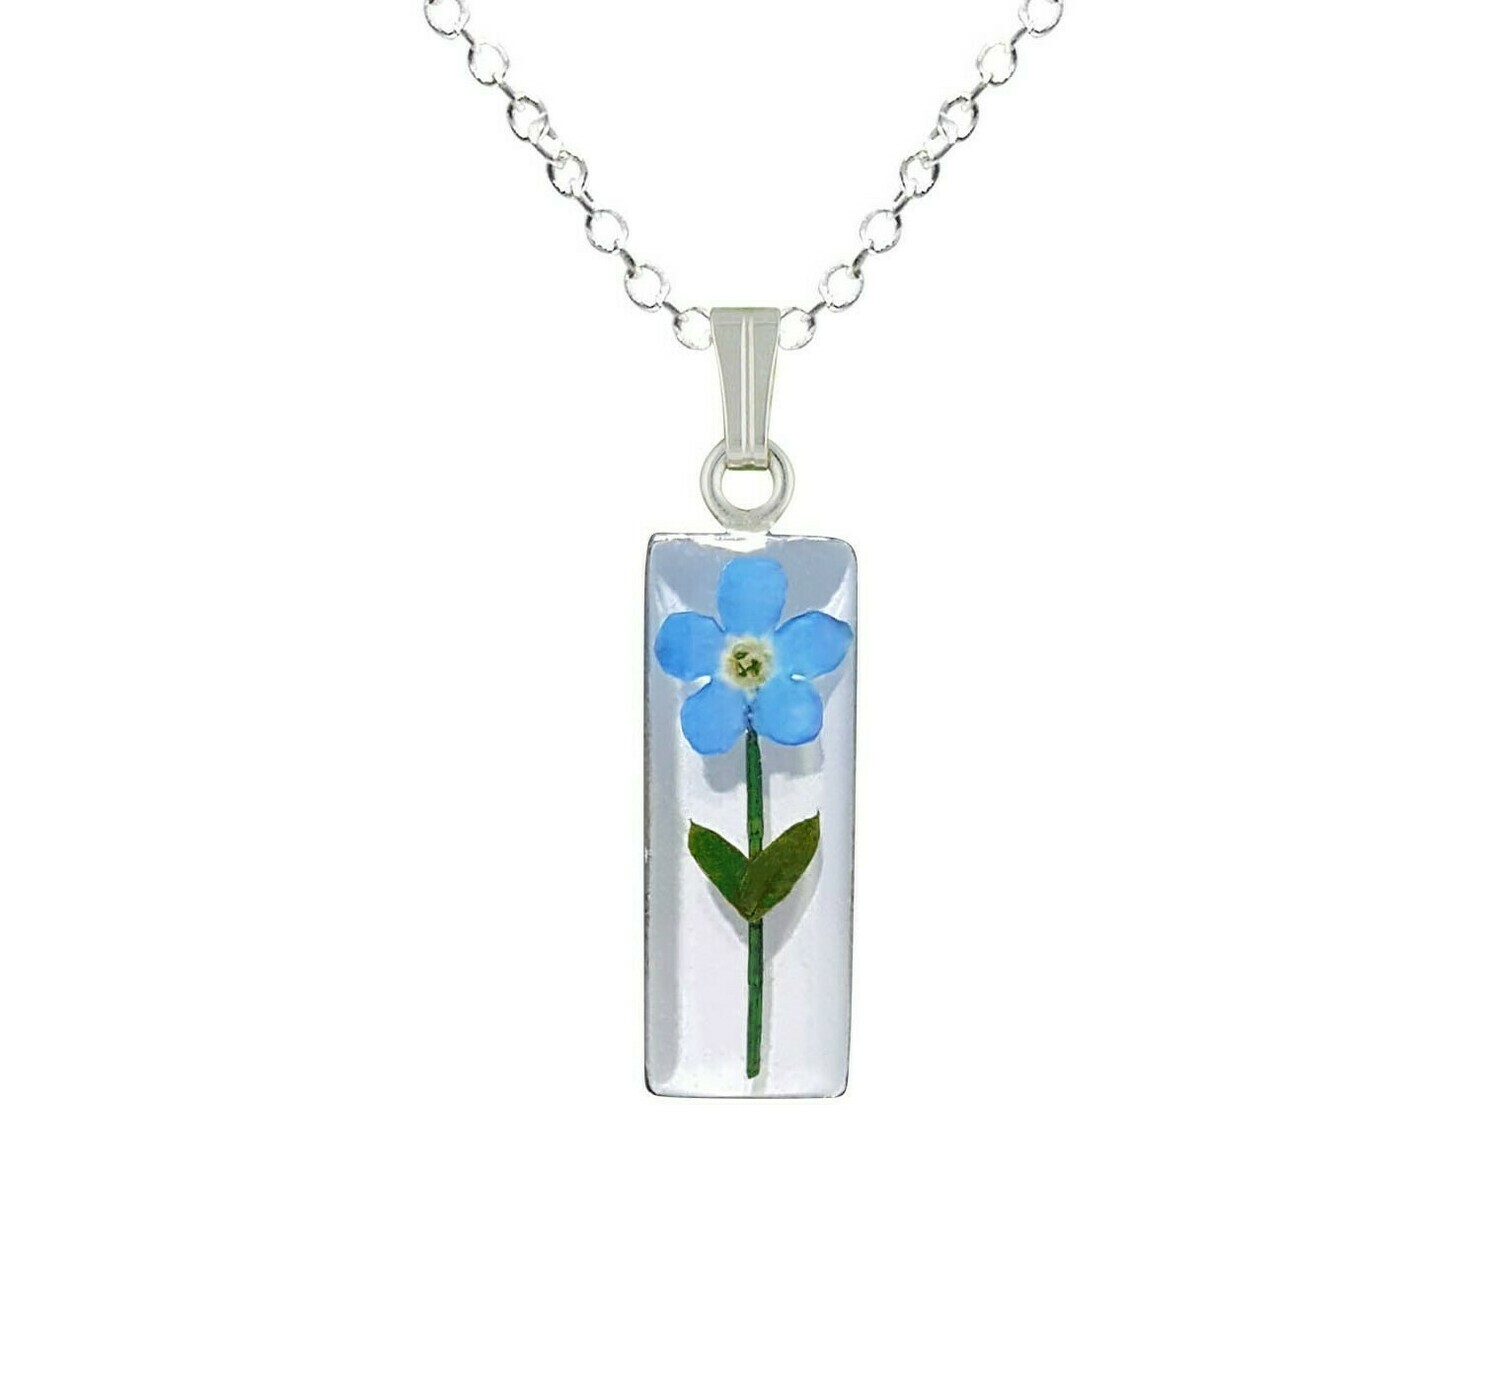 Forget-Me-Not Necklace, Medium Rectangle, White Background